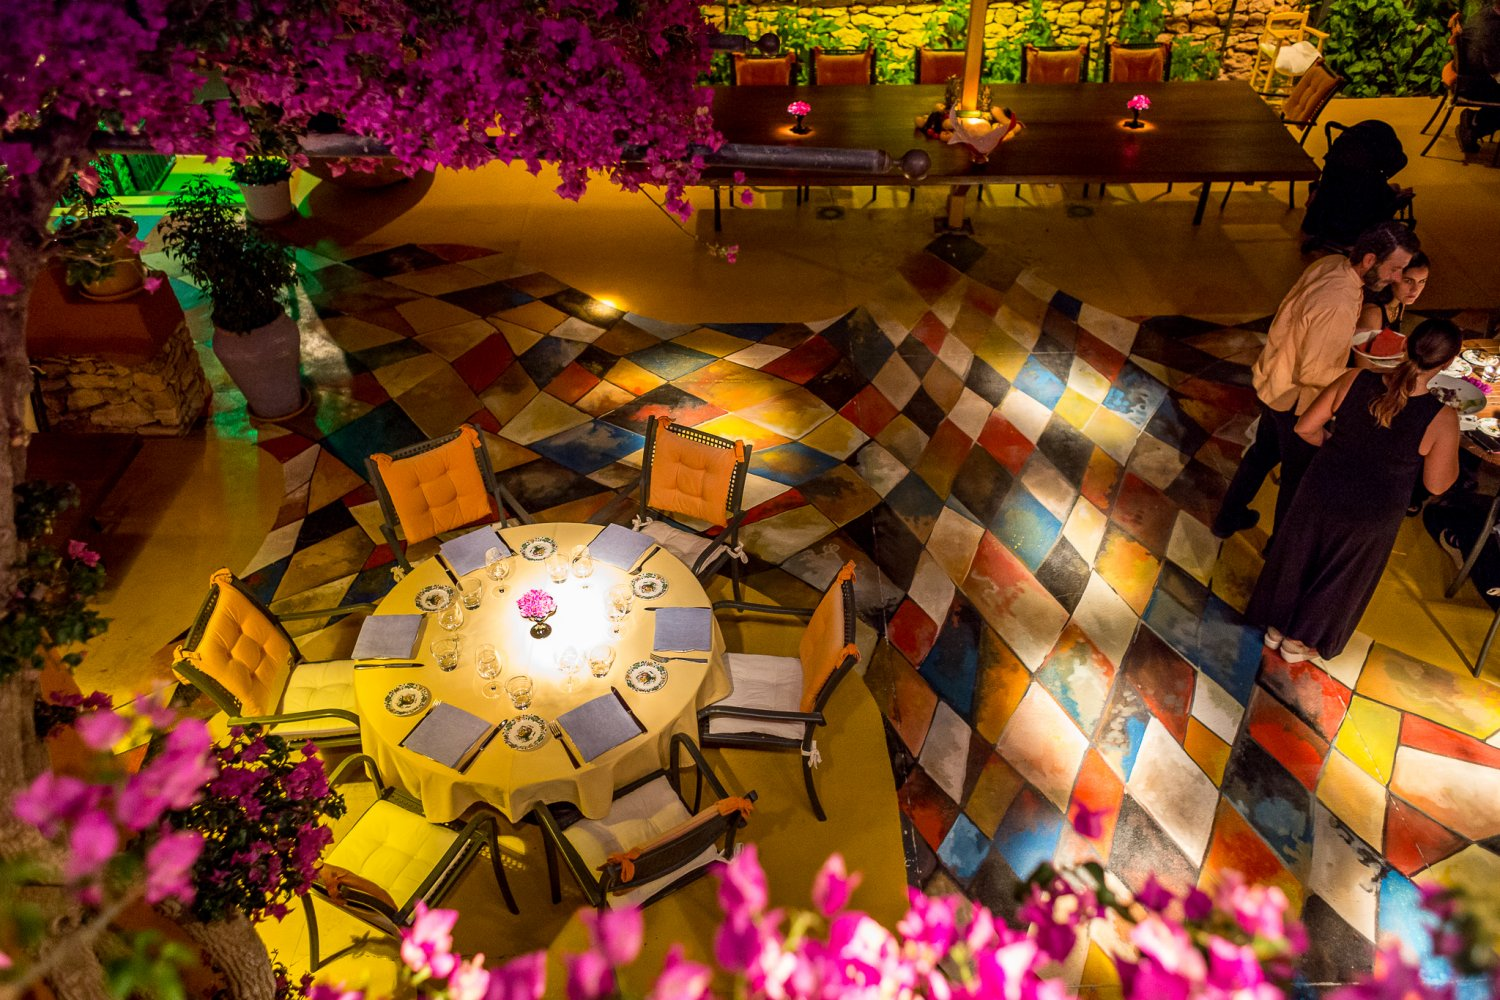 The lush garden with its colourful harlequin mosaic floor